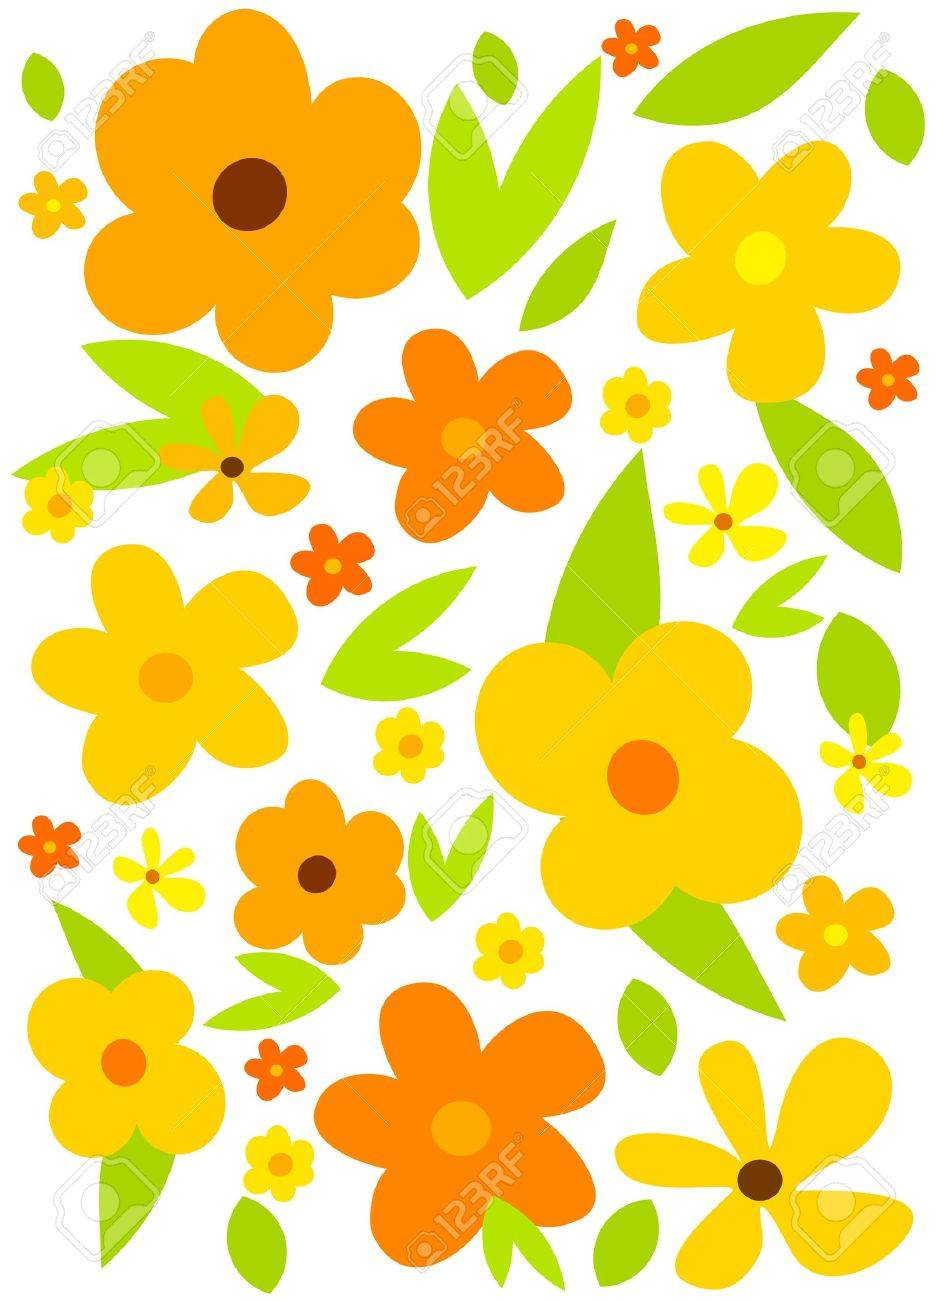 flower background with yellow flowers vector royalty free cliparts vectors and stock illustration image 9481763 flower background with yellow flowers vector